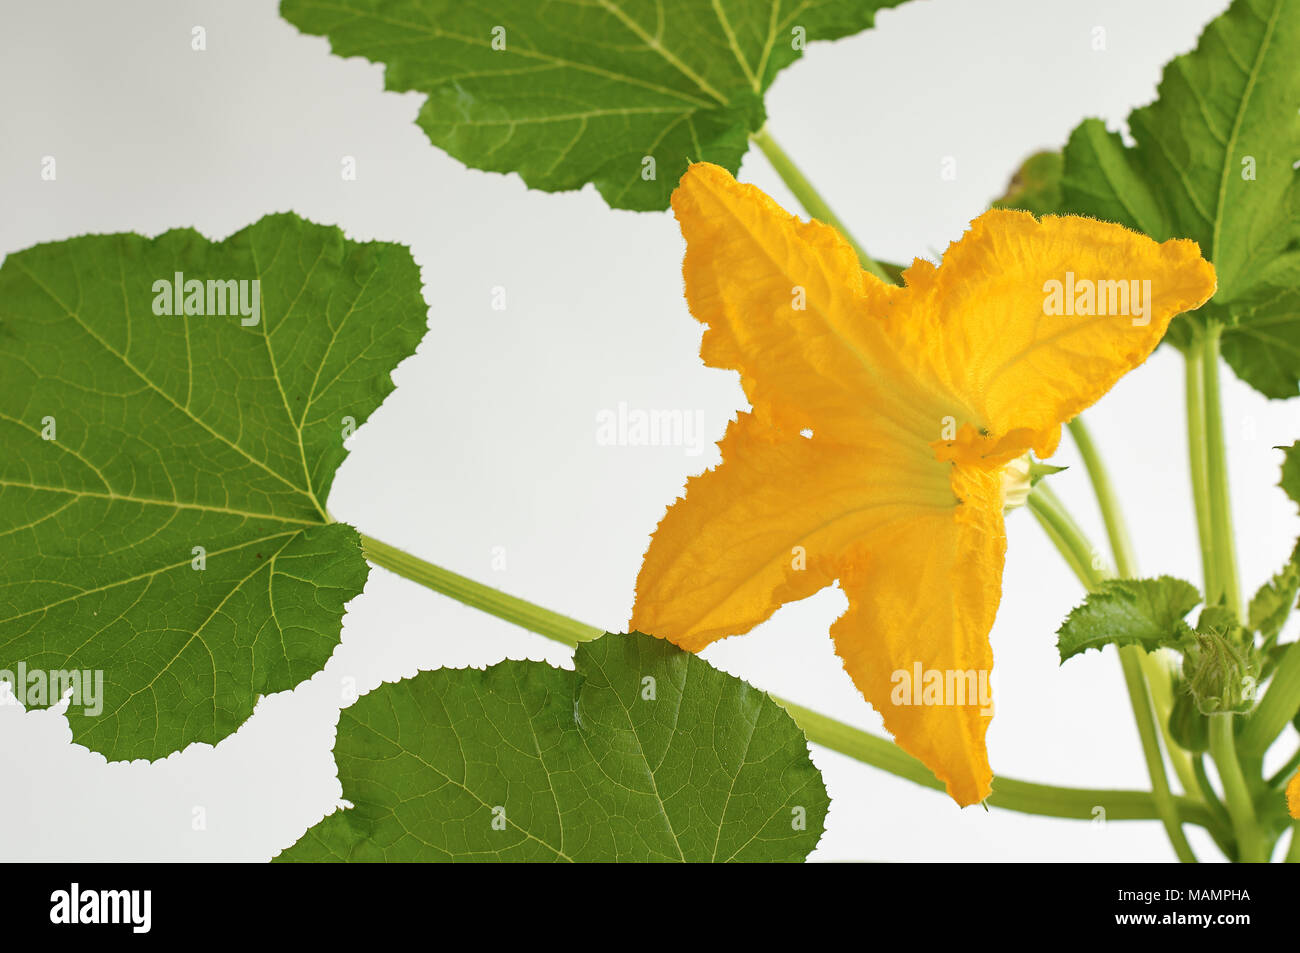 Zucchiniblüte - Stock Image